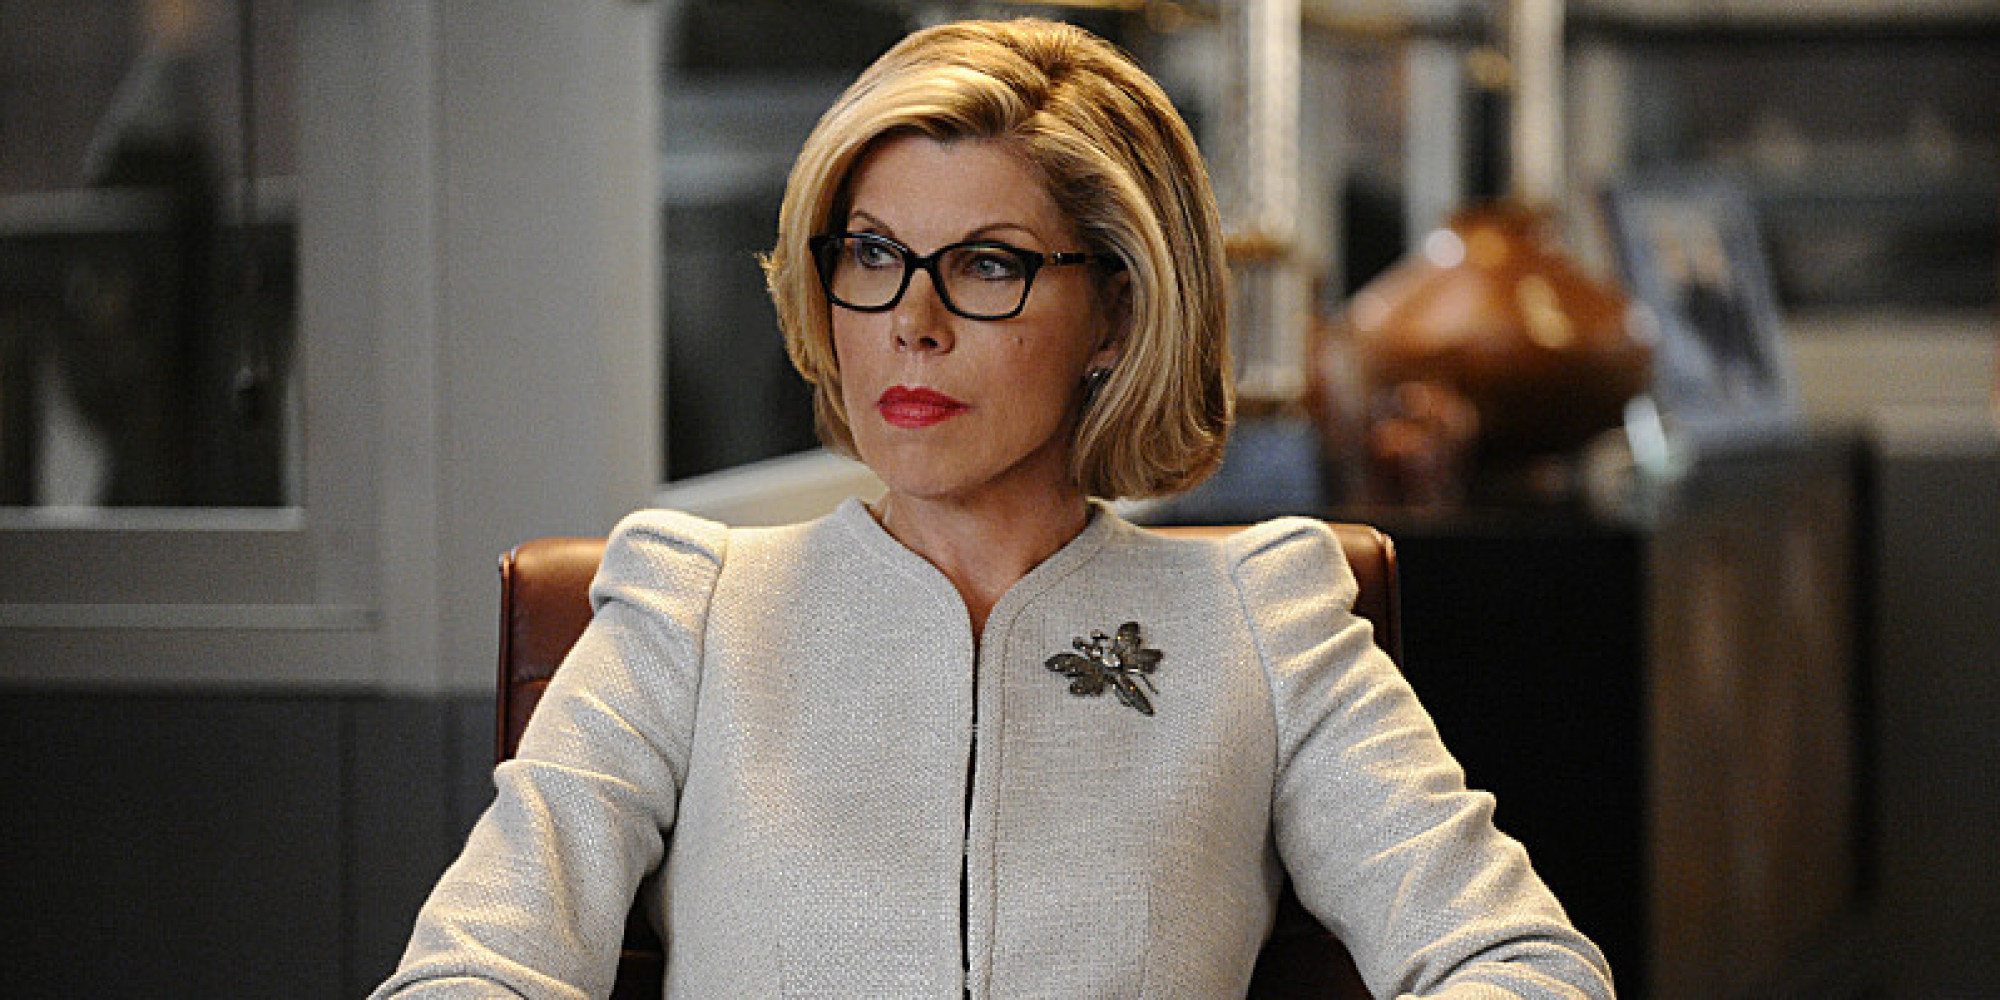 Diane Lockhart Wallpaper Diane vs Lockhart/gardner